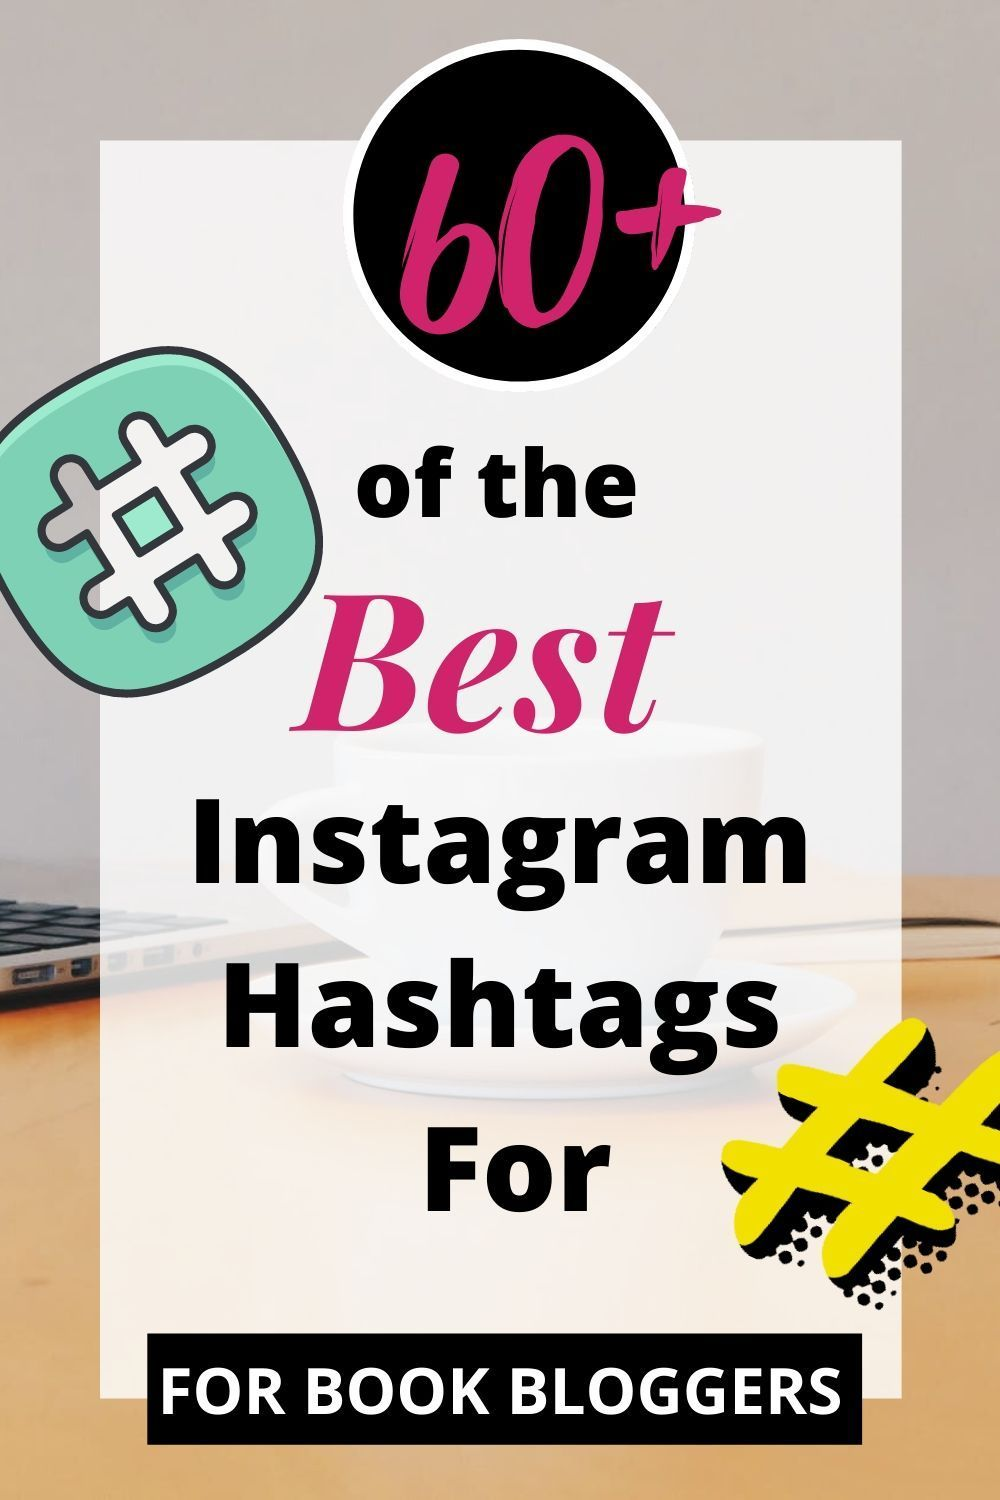 Top Hashtags for Books on Instagram, Twitter, Facebook in